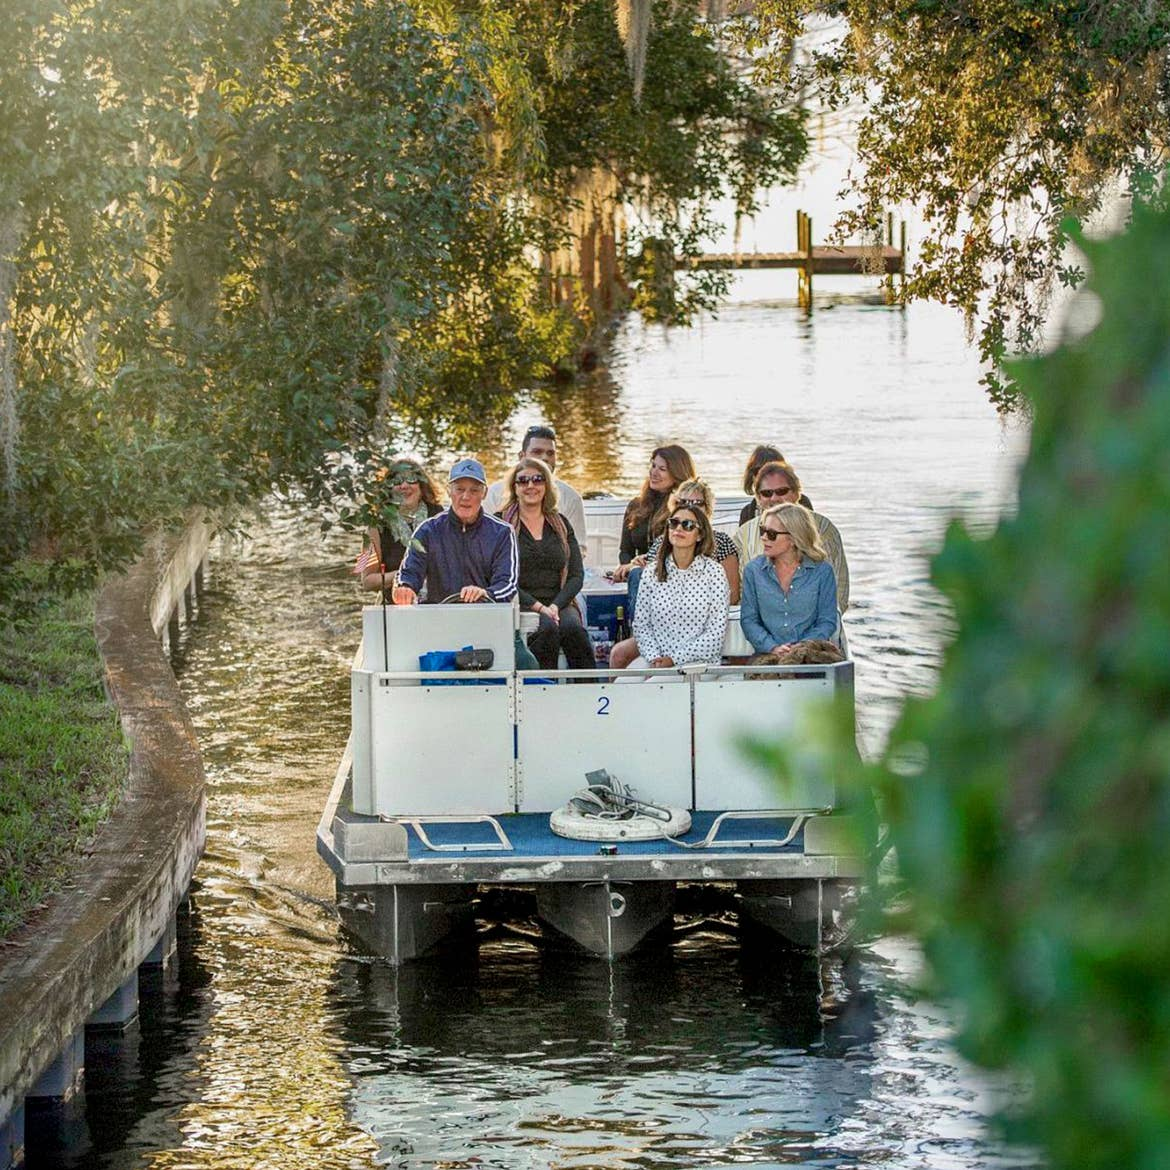 A tour guide speaks with the guests on board as they float through a canal. Photo courtesy of Visit Orlando